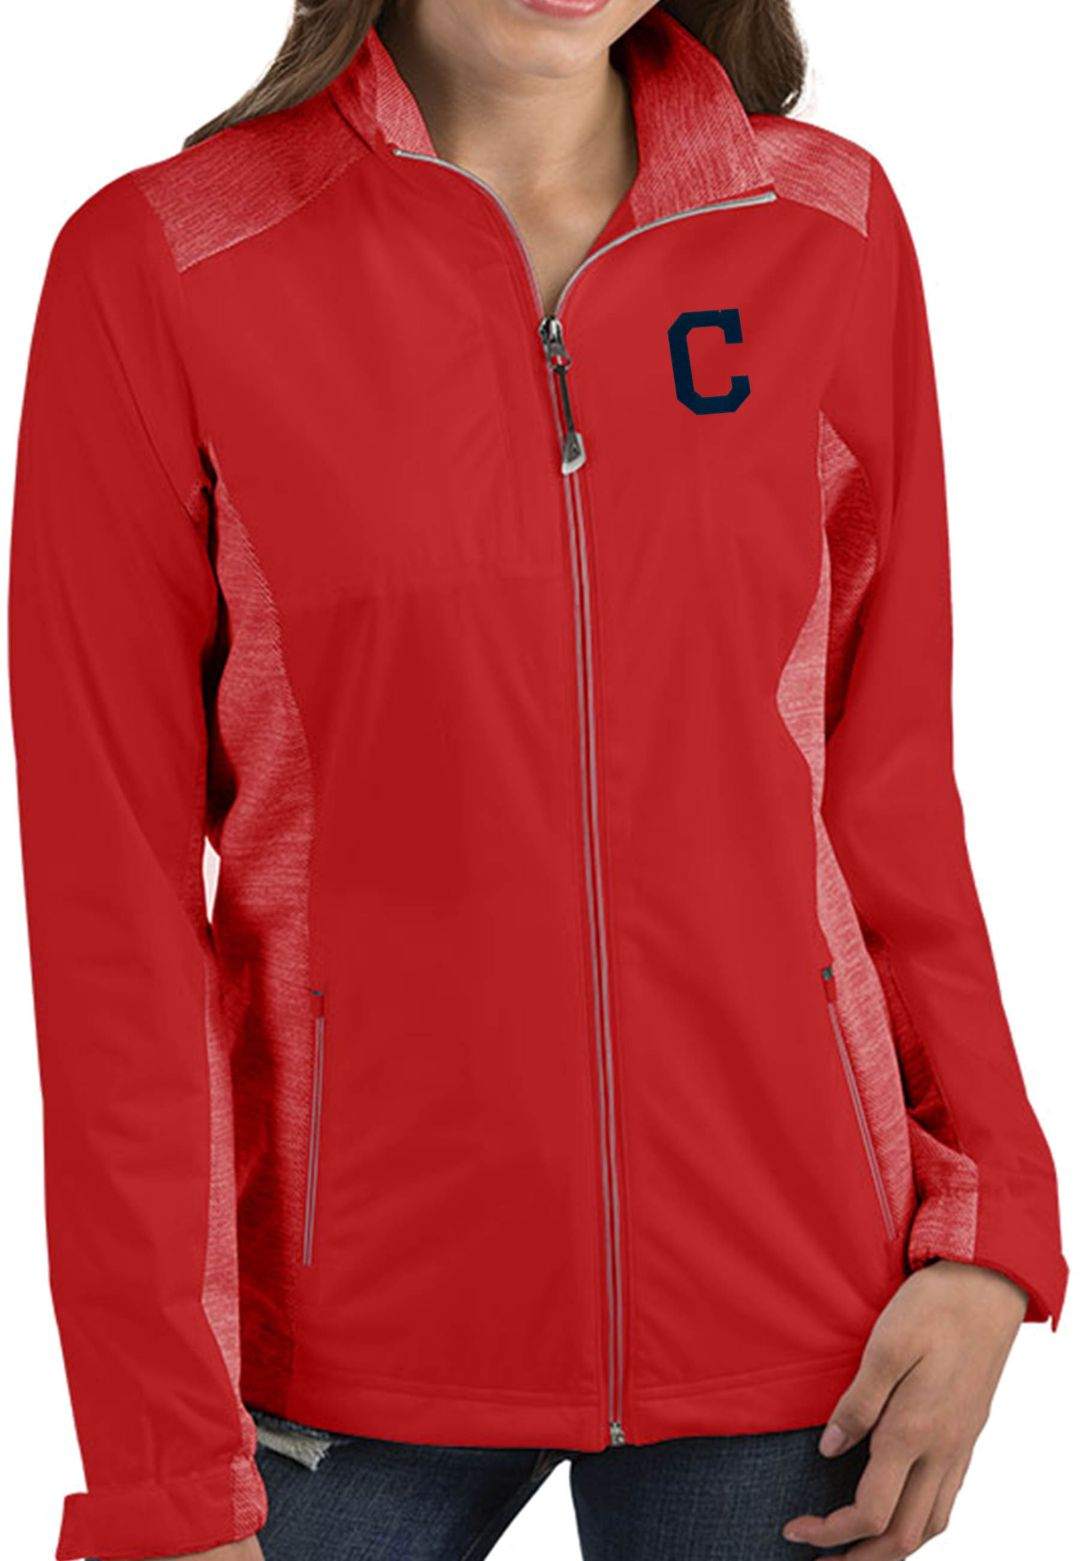 check out 6bf0c 3b82c Antigua Women's Cleveland Indians Revolve Red Full-Zip Jacket